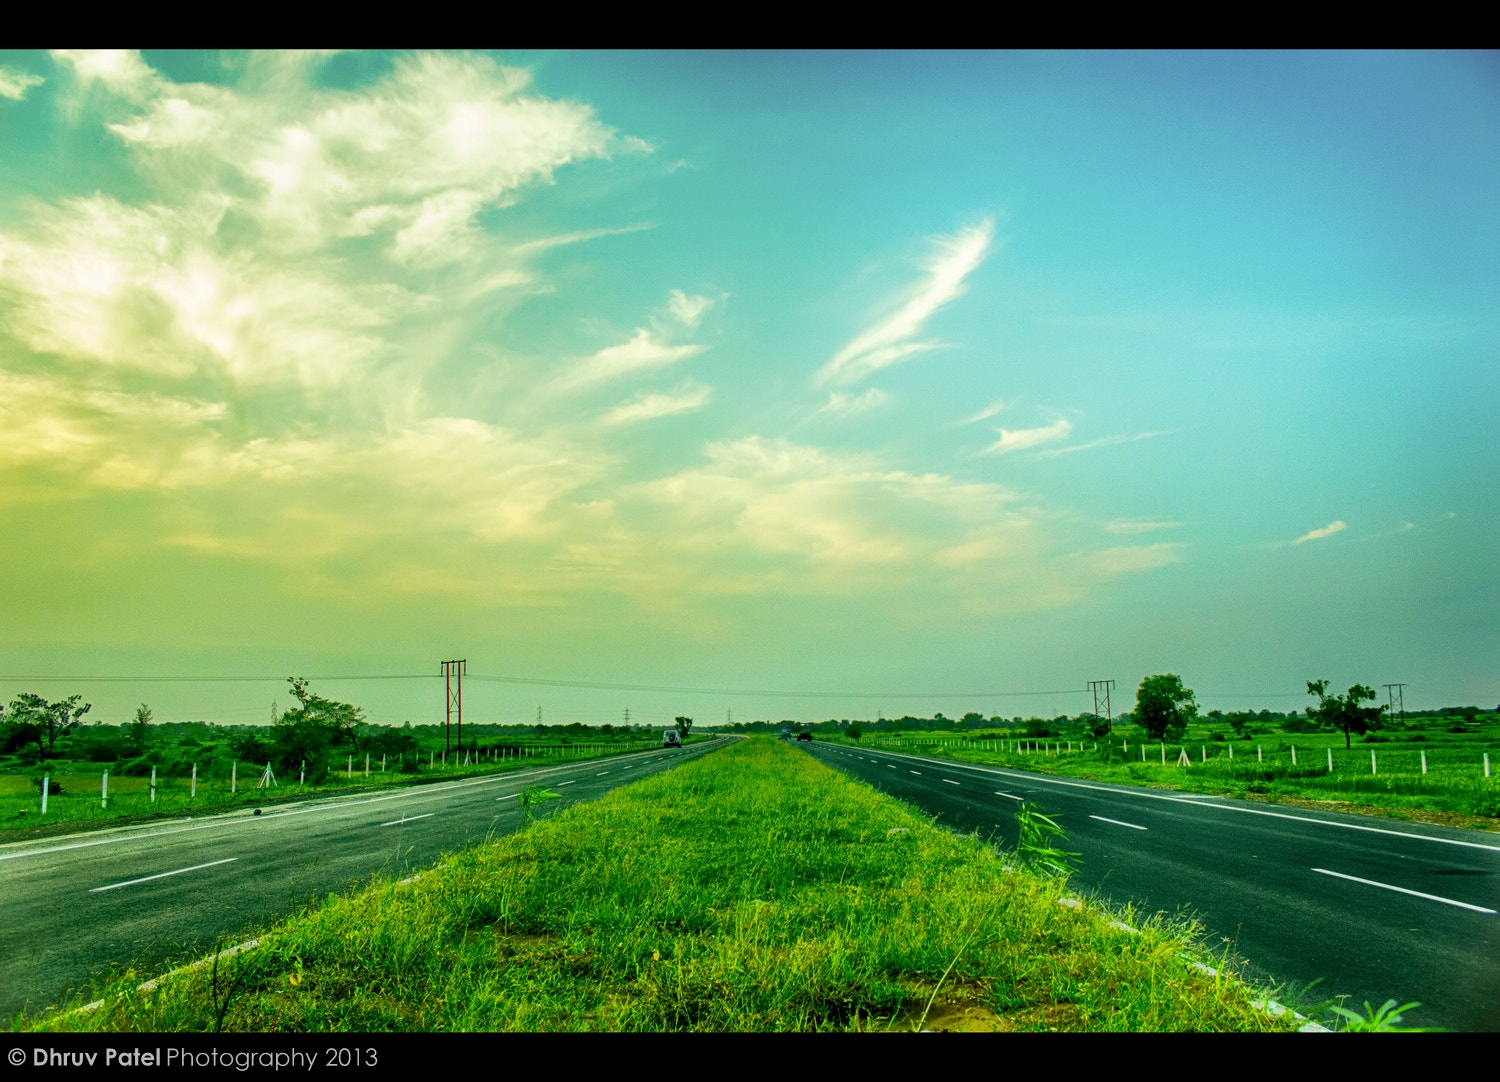 Photograph The Parallel World - HDR by Dhruv Patel on 500px